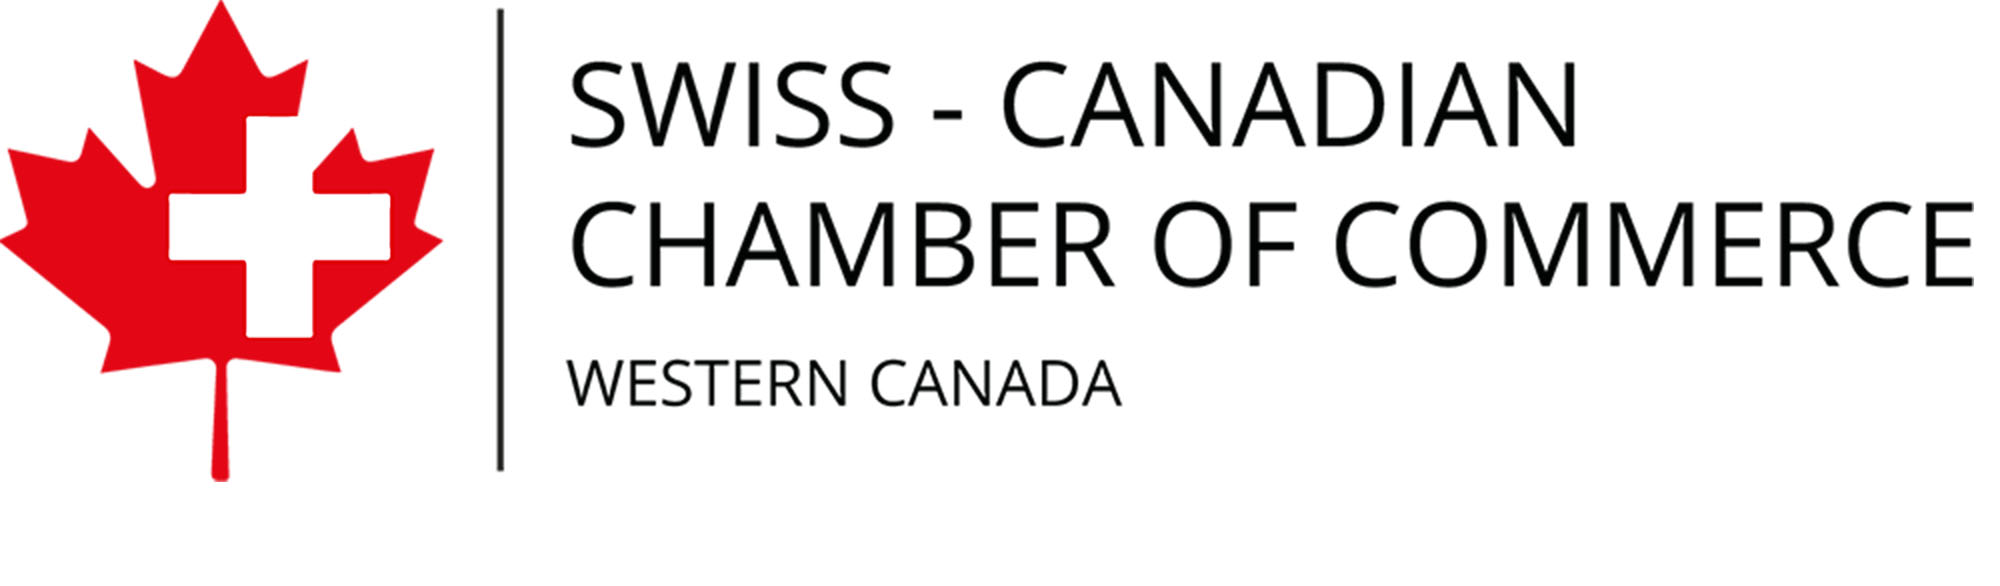 Swiss Canadian Chamber of Commerce BC & AB